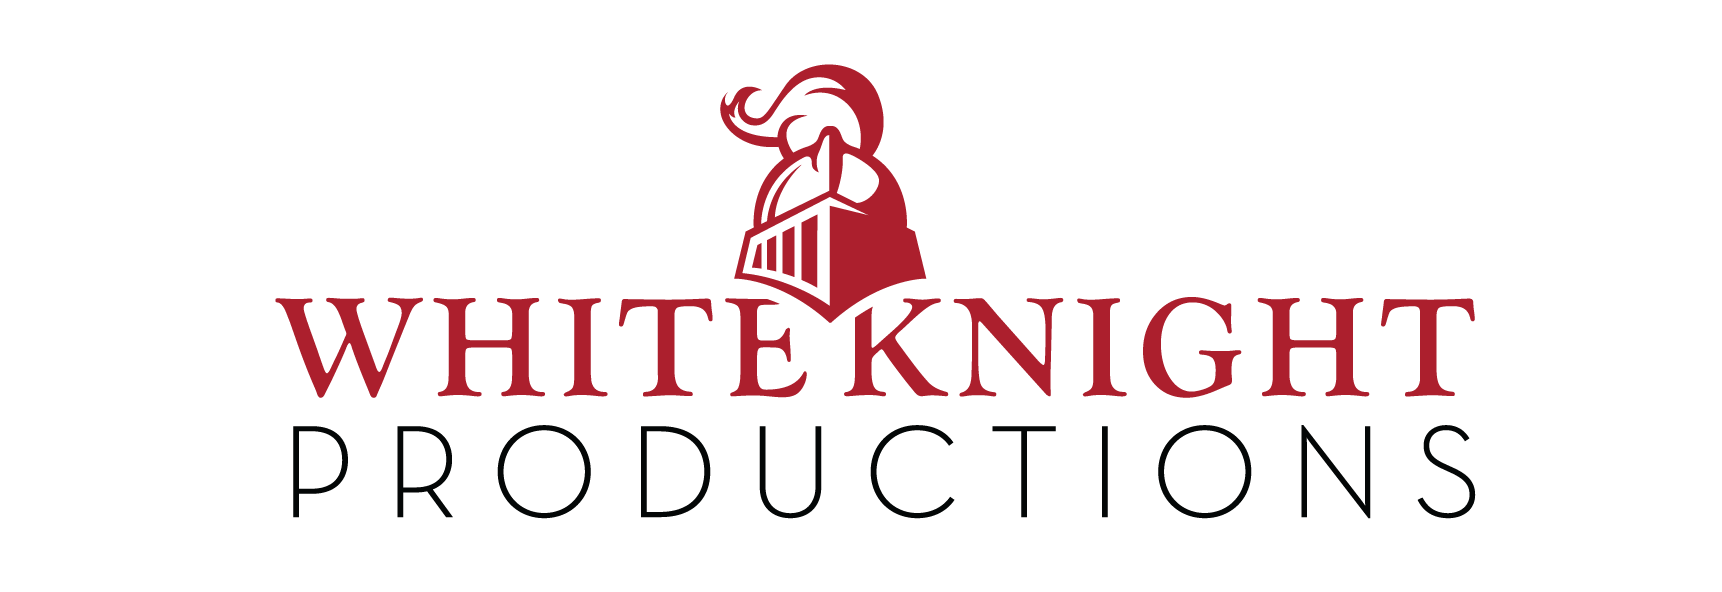 WhiteKnightLogo